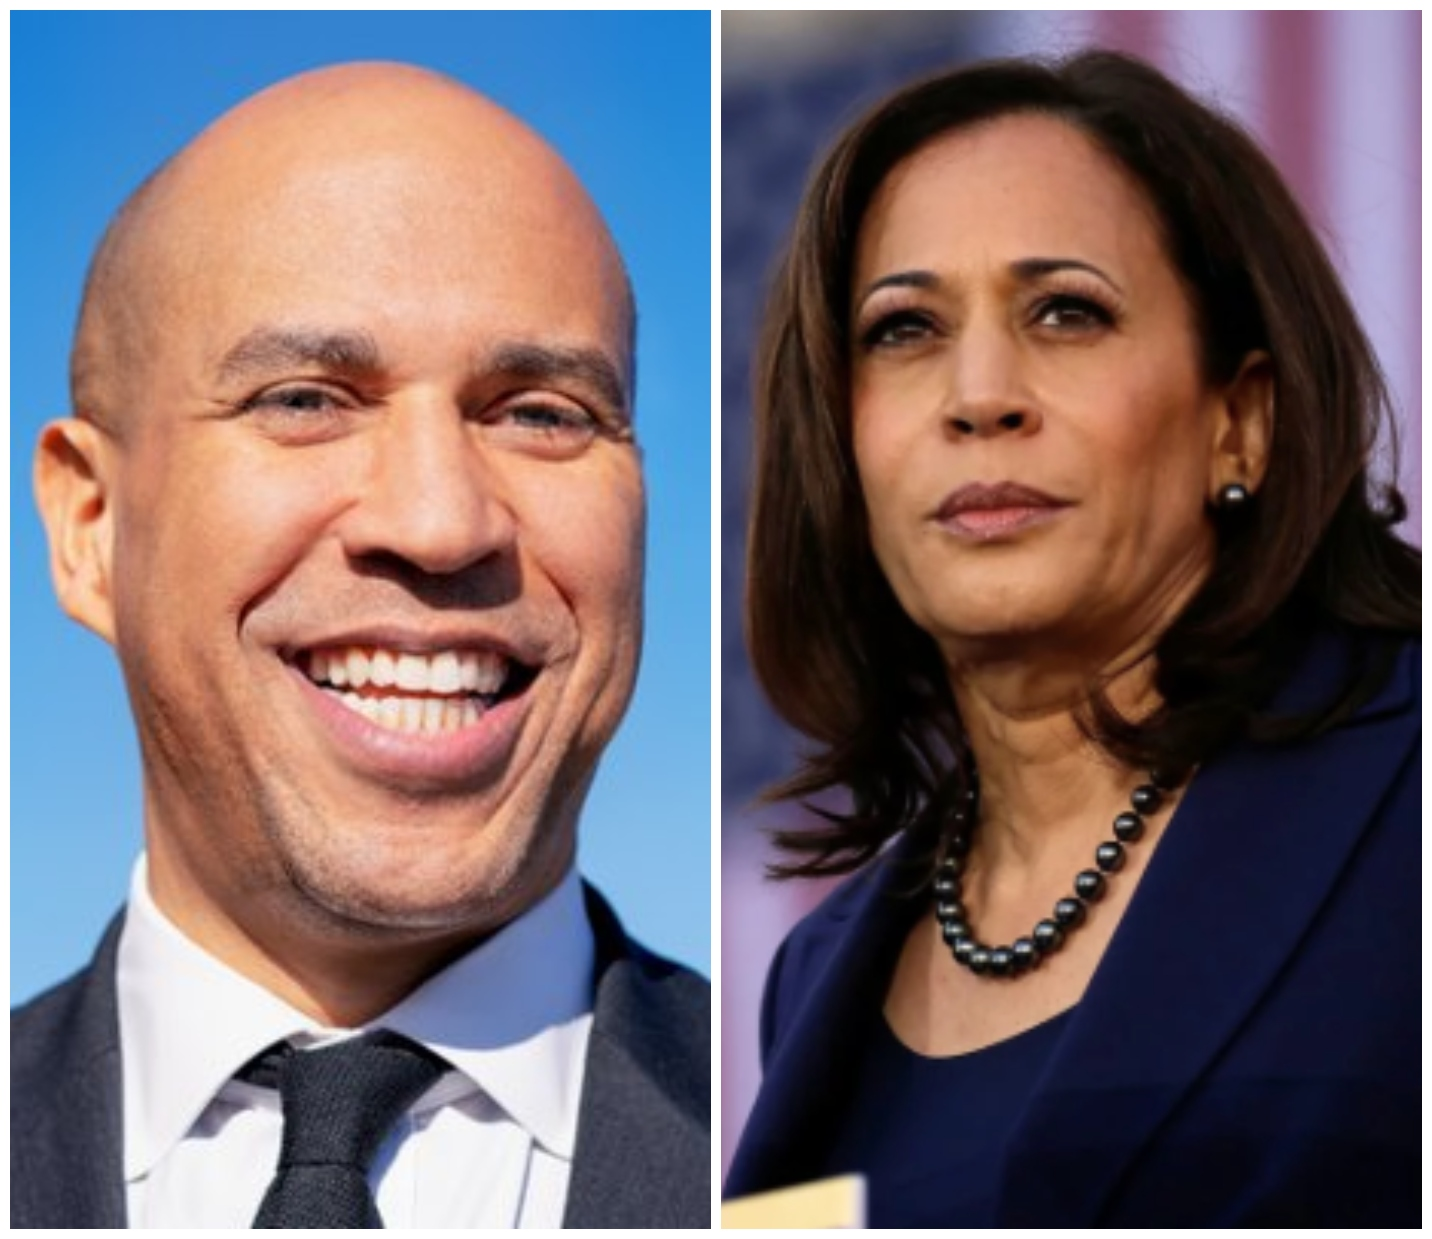 A Look At Every Democratic Candidate For President In 2020